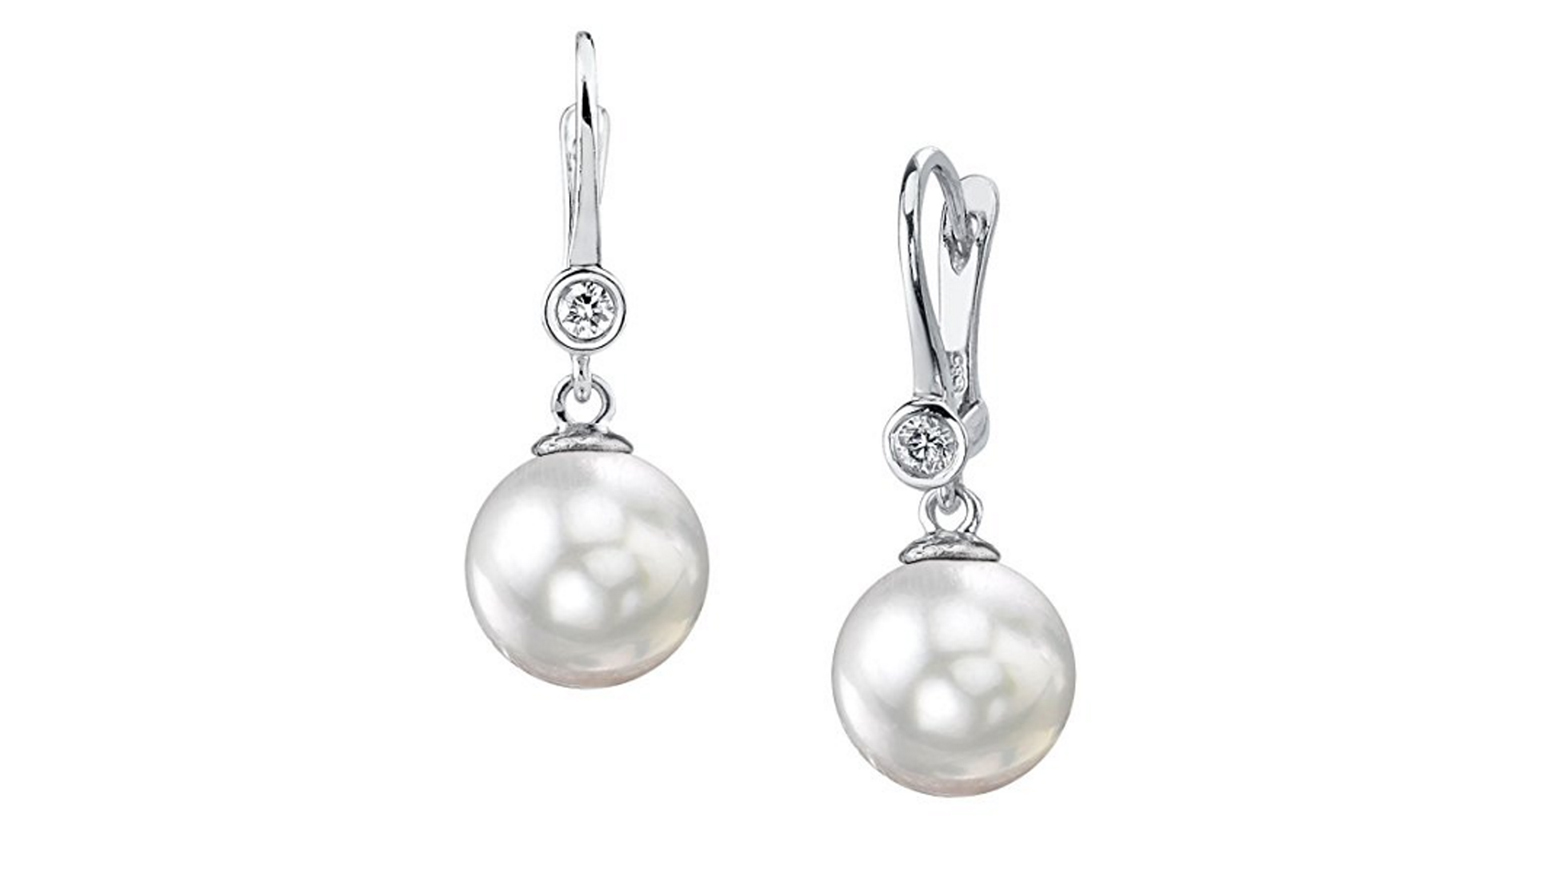 Amazon, cyber monday, cyber monday sales, cyber monday deals, jewelry, south sea pearls, pearl earrings, pearls